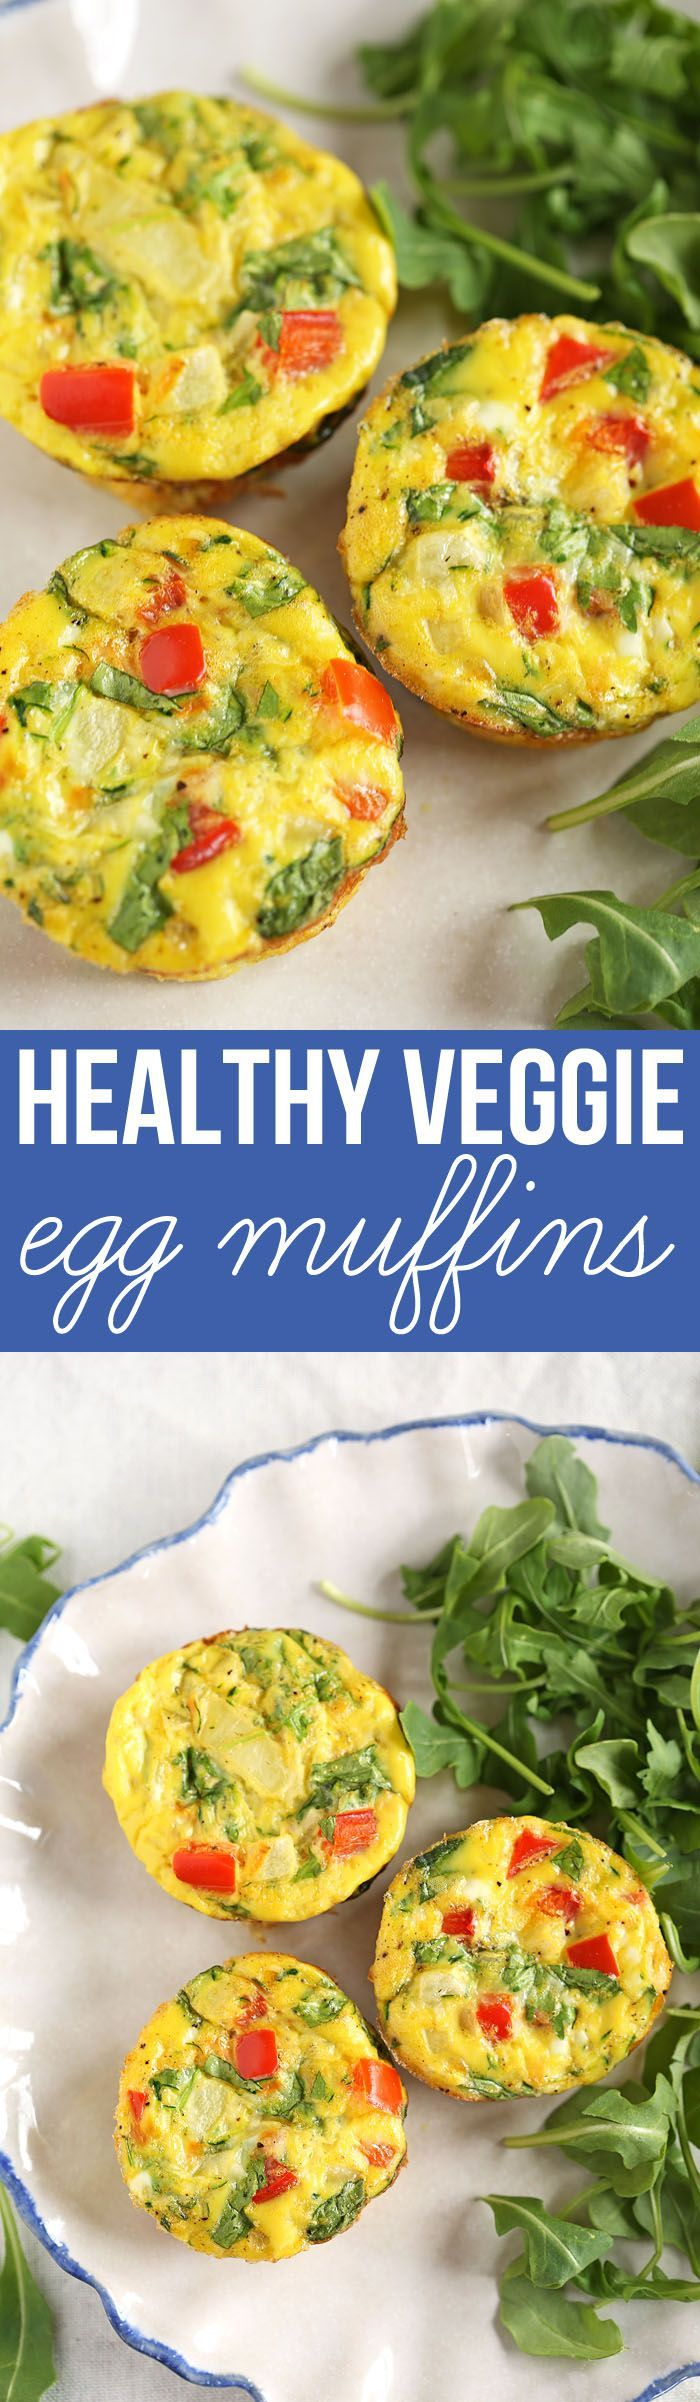 Healthy Breakfast Egg Muffins full of delicious veggies that are super easy to grab on-the-go! eat-yourself-skinny.com